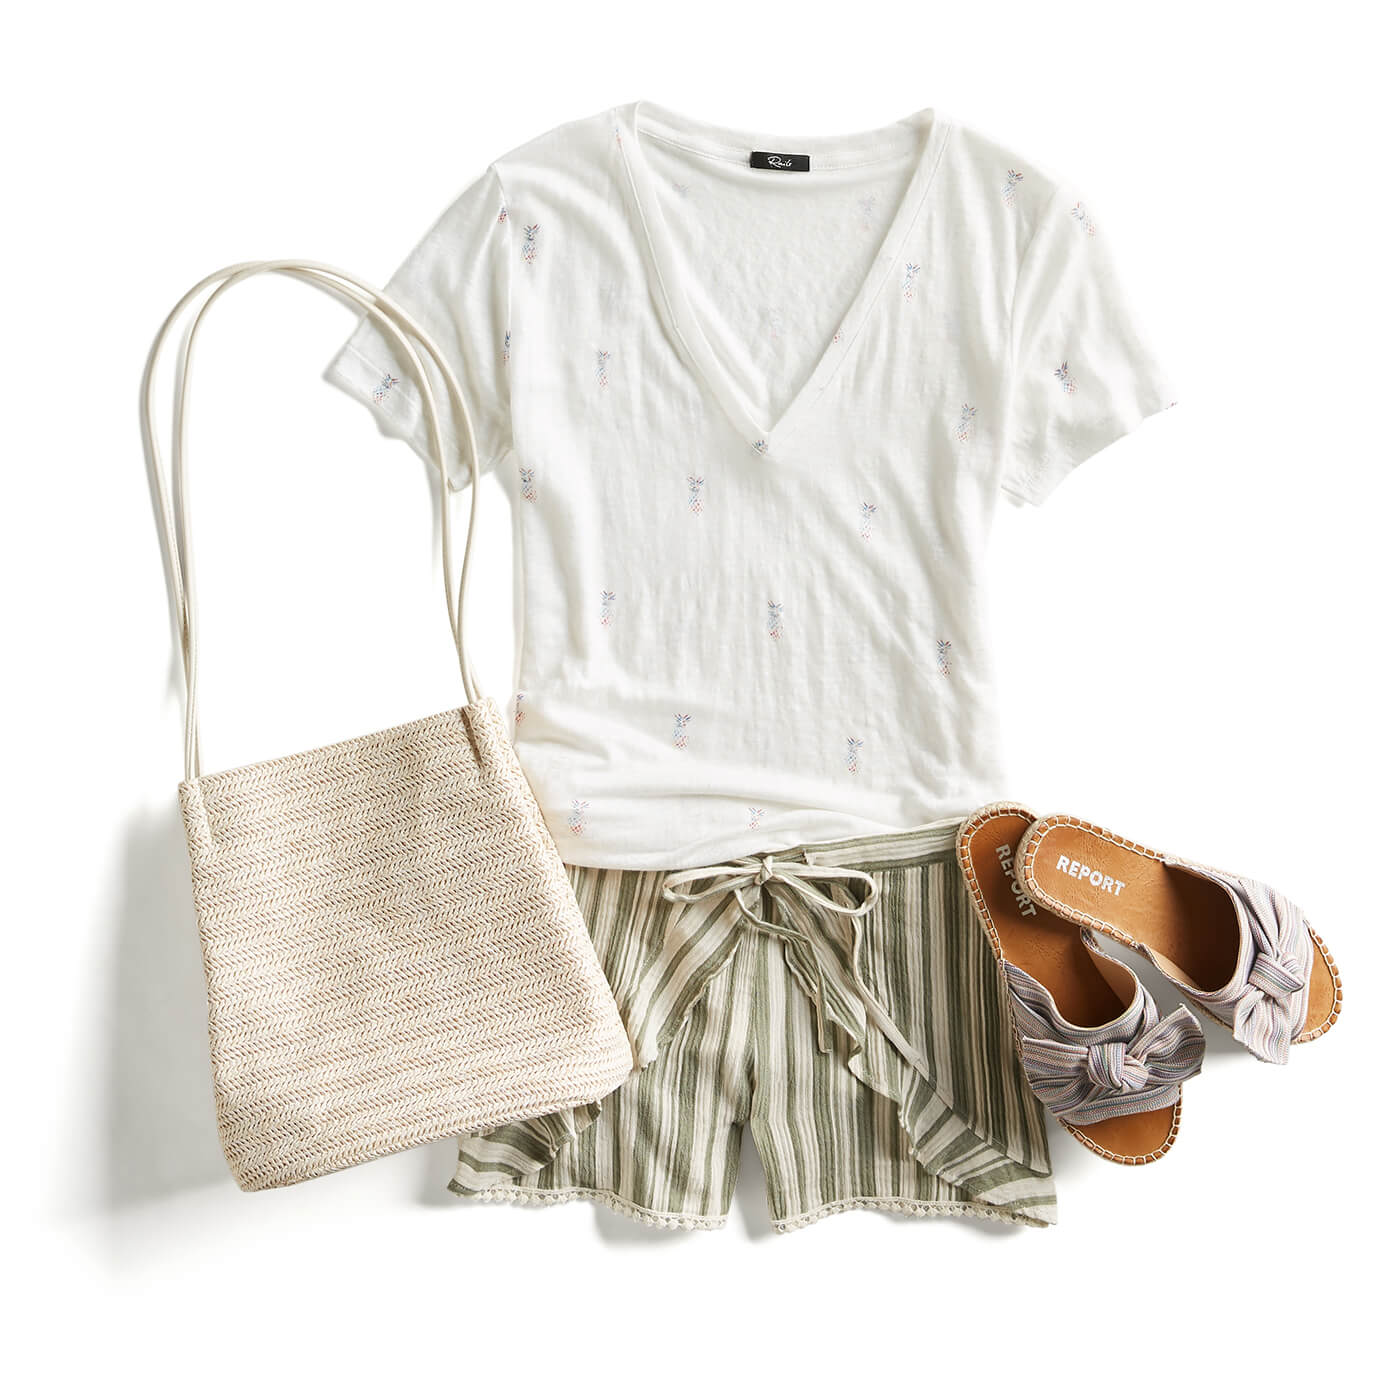 What to Wear to Warm Weather Vacation